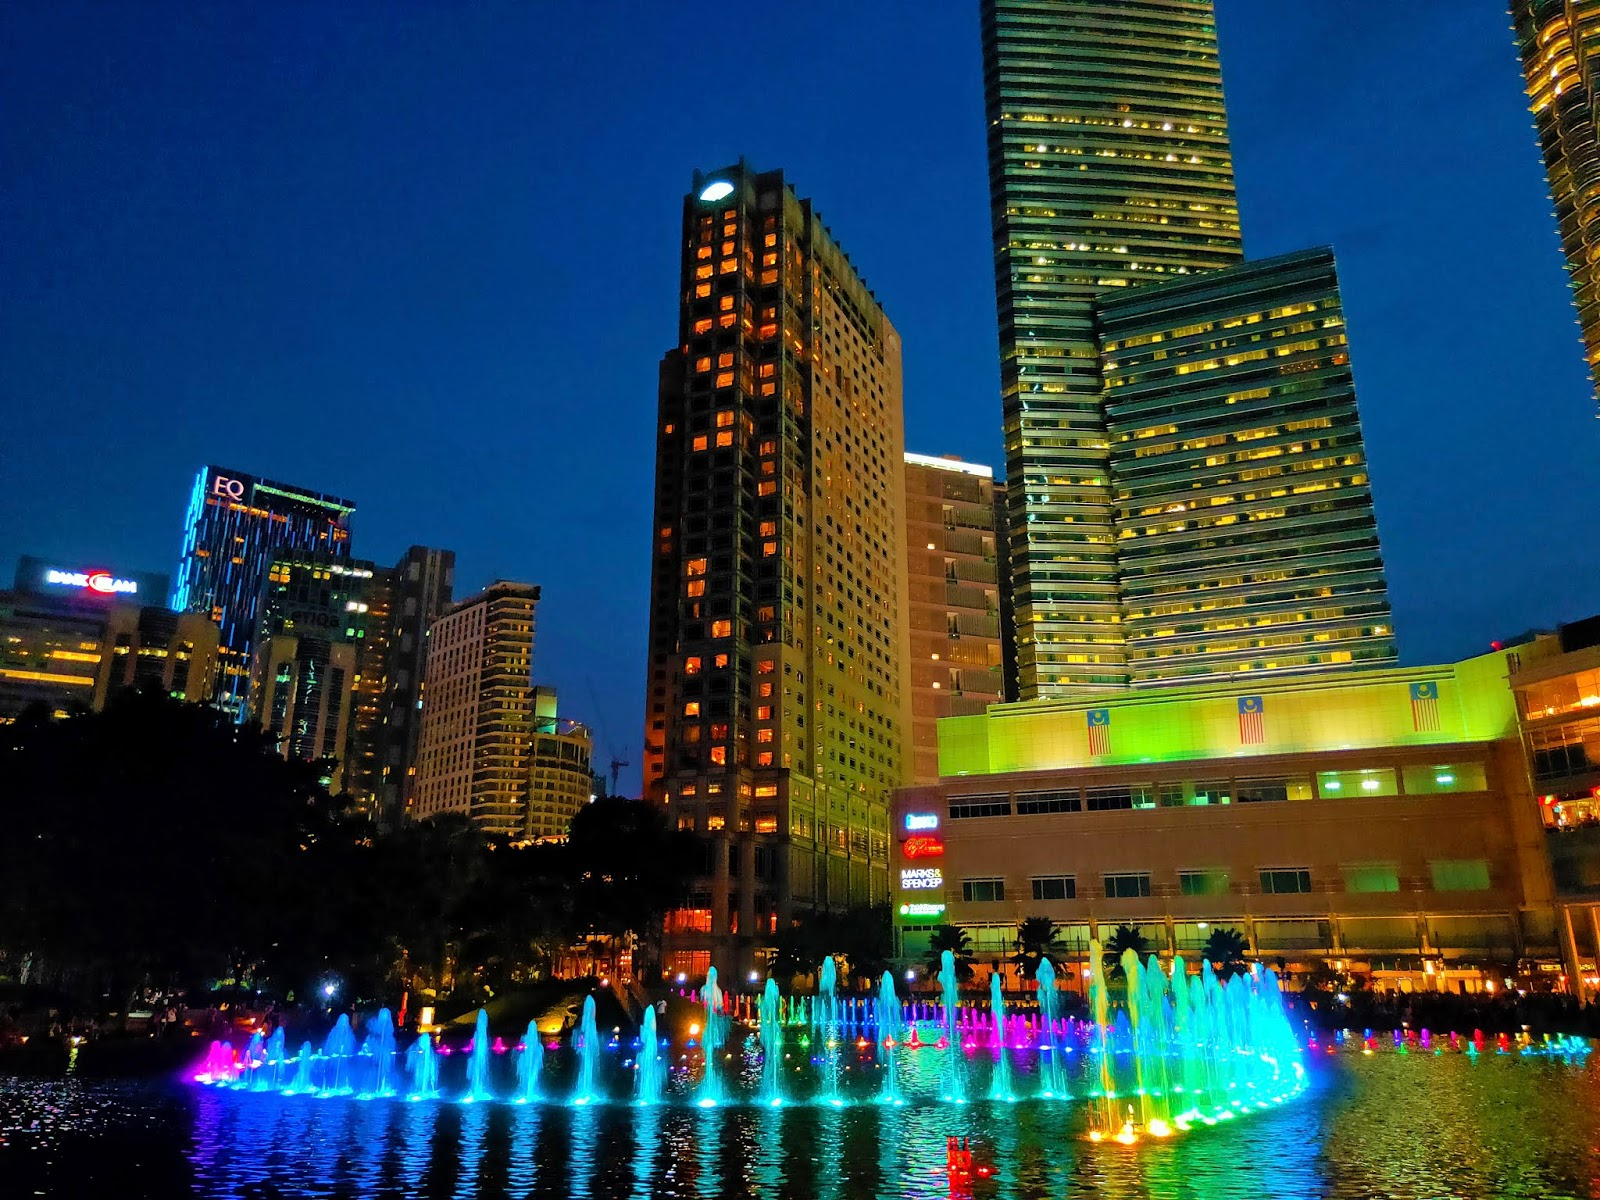 colorful fountain klcc